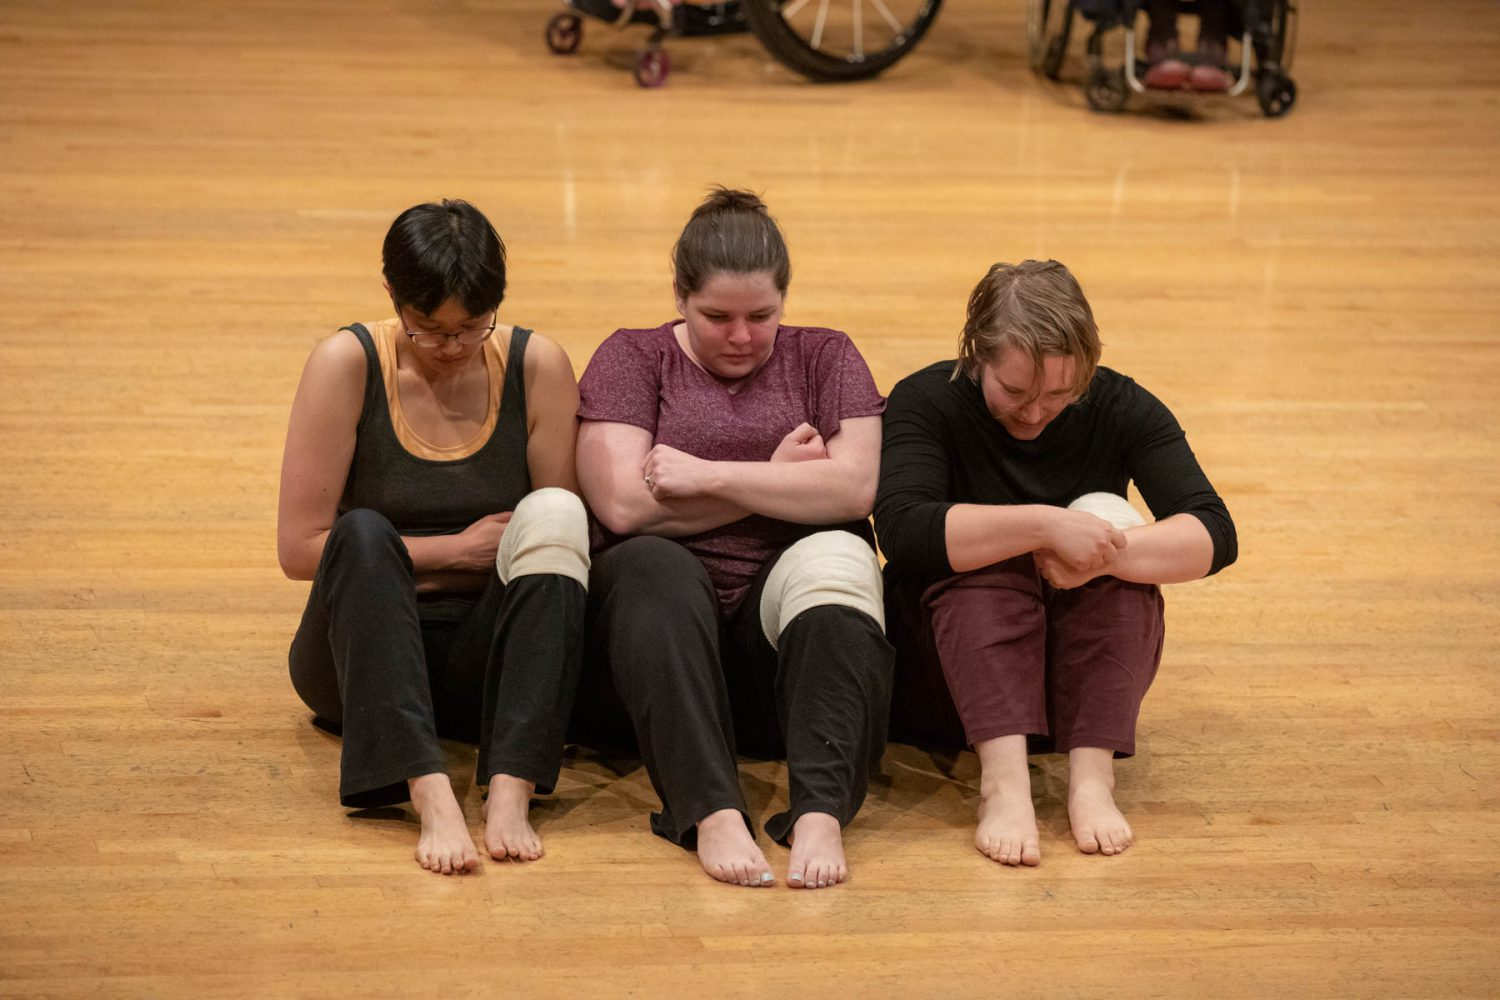 Mel, Margaret, and Bailey seated closely in a row on the floor with their knees and arms close to their bodies.